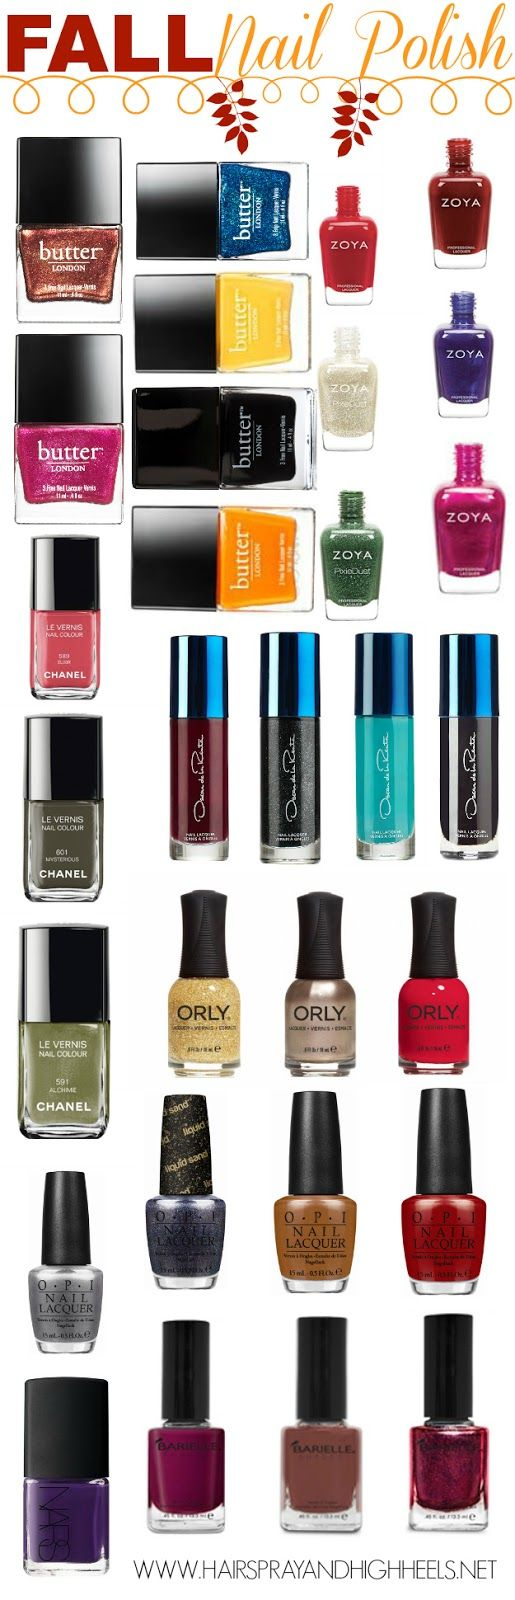 Fall 2013 Nail colours ZOYA  Livingston - A lush Autumn cream red. Pepper - A brick red cream. Neve - A sapphire blue metallic. Tomoko - Champagne silver with a matte, textured, sparkling metal finish. Mason - Red violet metallic. Chita - Forest green in a matte, textured, sparkling finish. Click link for full list............